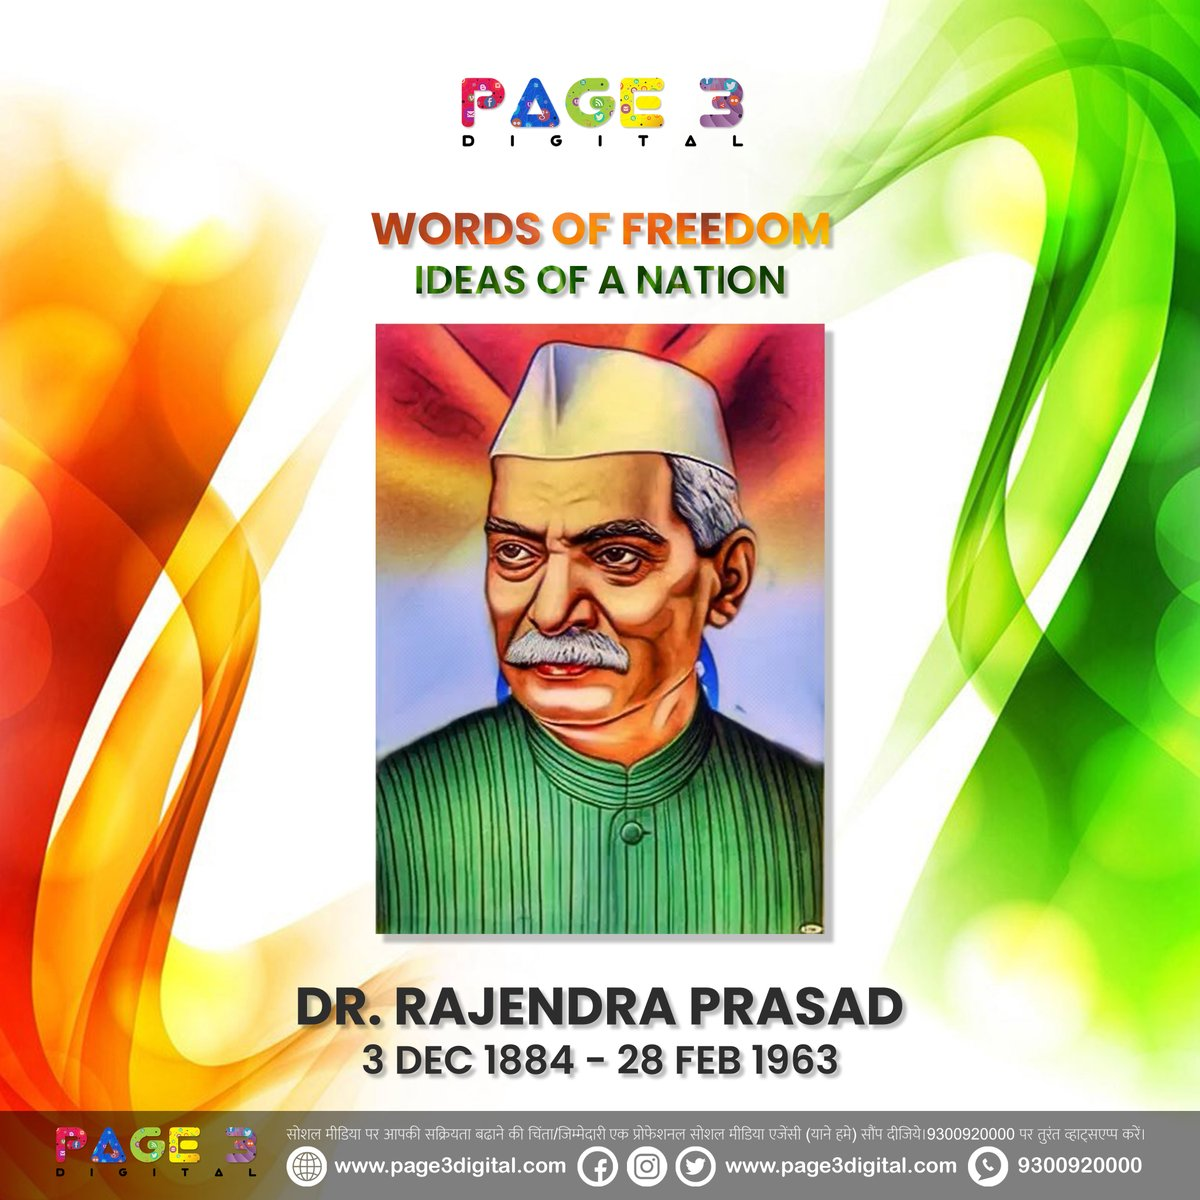 """""""In attaining our ideals, our means should be as pure as the end!"""" - Dr. Rajendra Prasad  #RajendraPrasad #DRrajendraprasad #DRprasad #presidentofindia #राजेंद्रप्रसाद #प्रथमराष्ट्रपति #राष्ट्रपति #डॉराजेंद्रप्रसाद #freedom #prasad #deathAnniversary"""